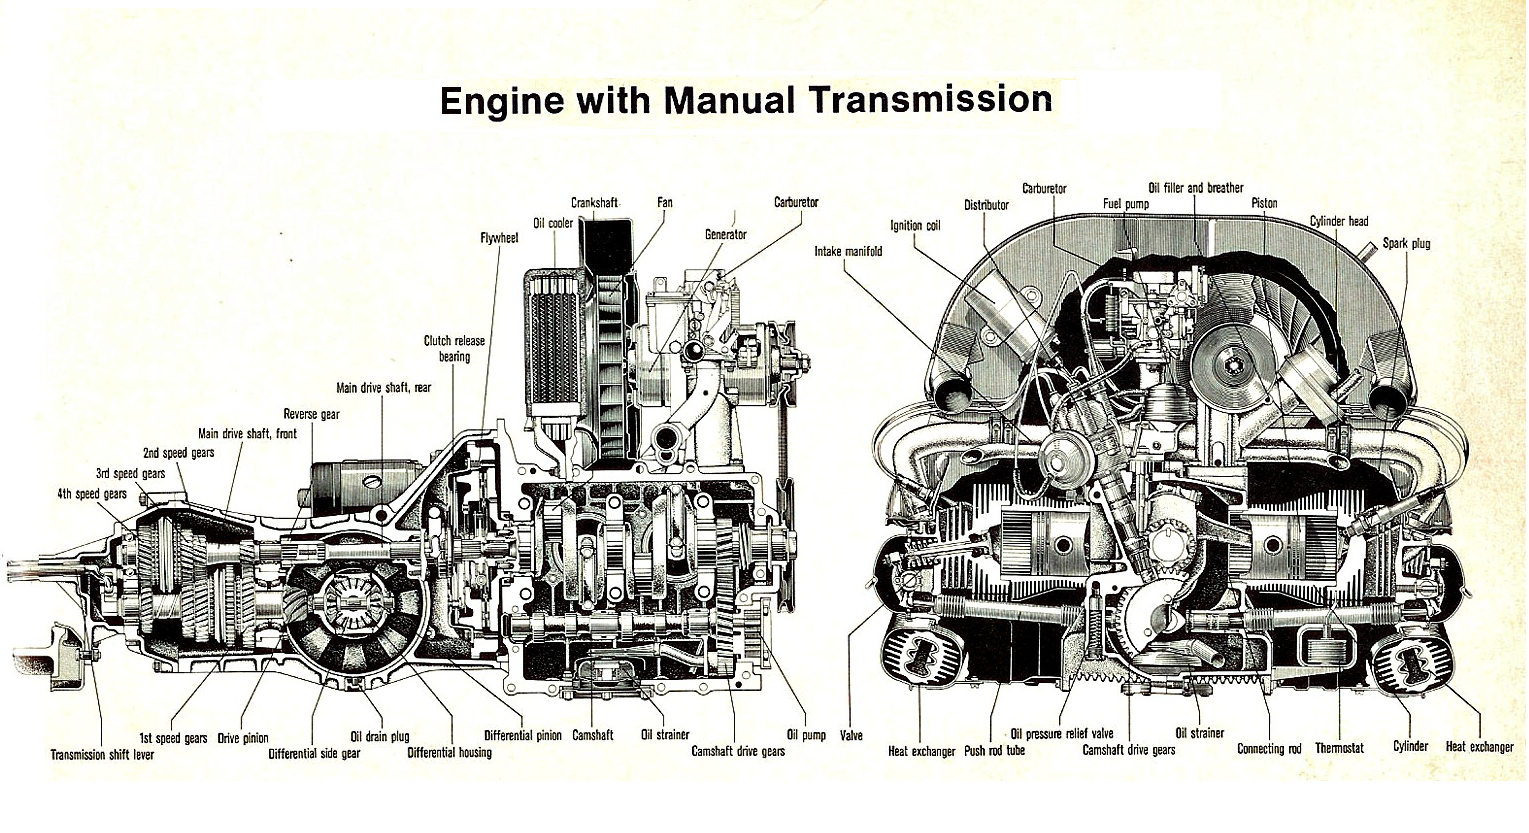 1968 Vw Beetle Engine Diagram Wiring Diagrams Parts Free Image For 2003 2000